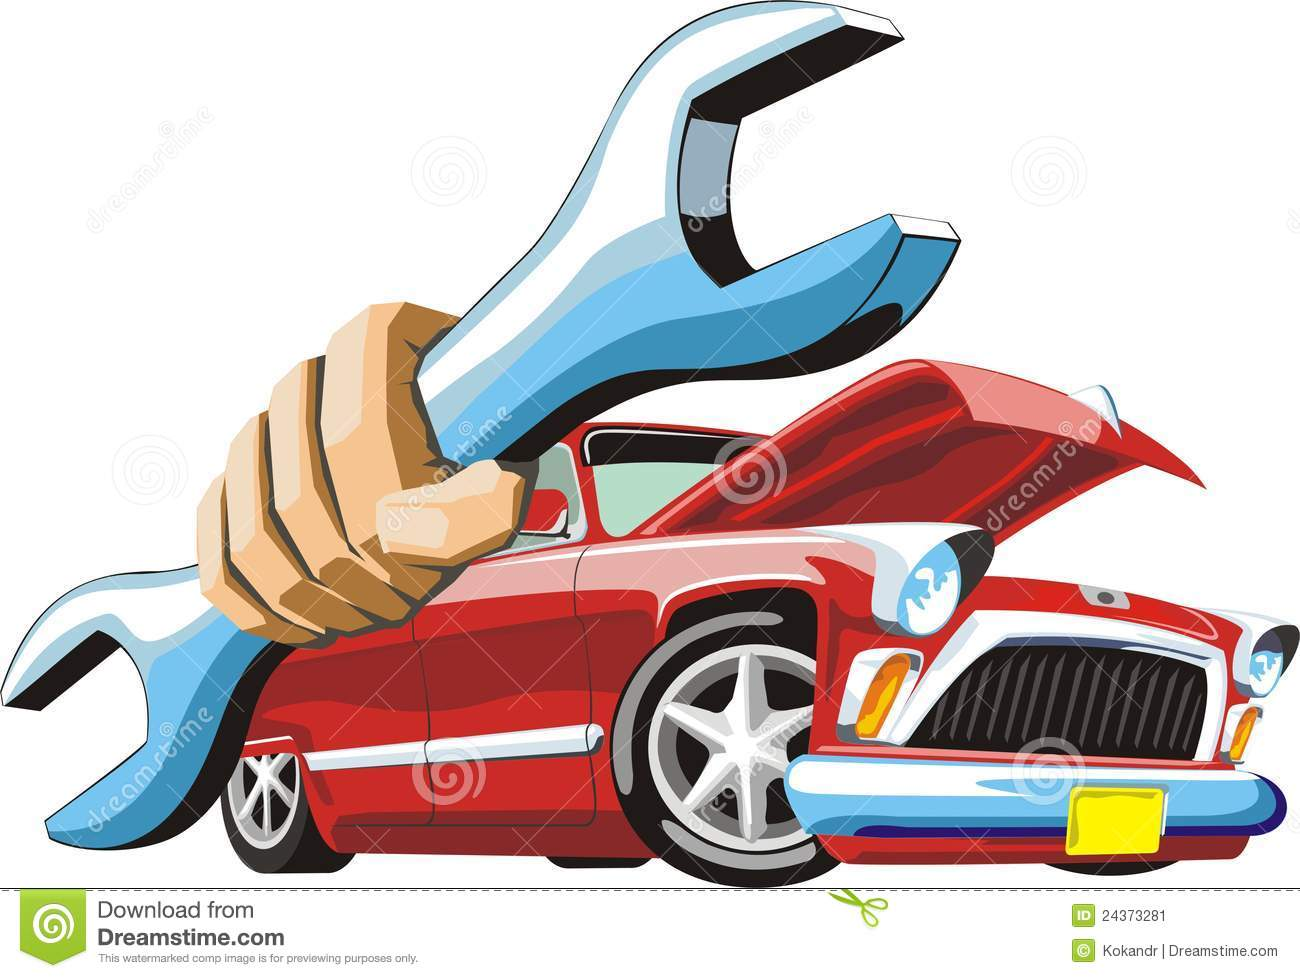 car-repair-stock-image-image-24373281-MwTrrc-clipart.jpg